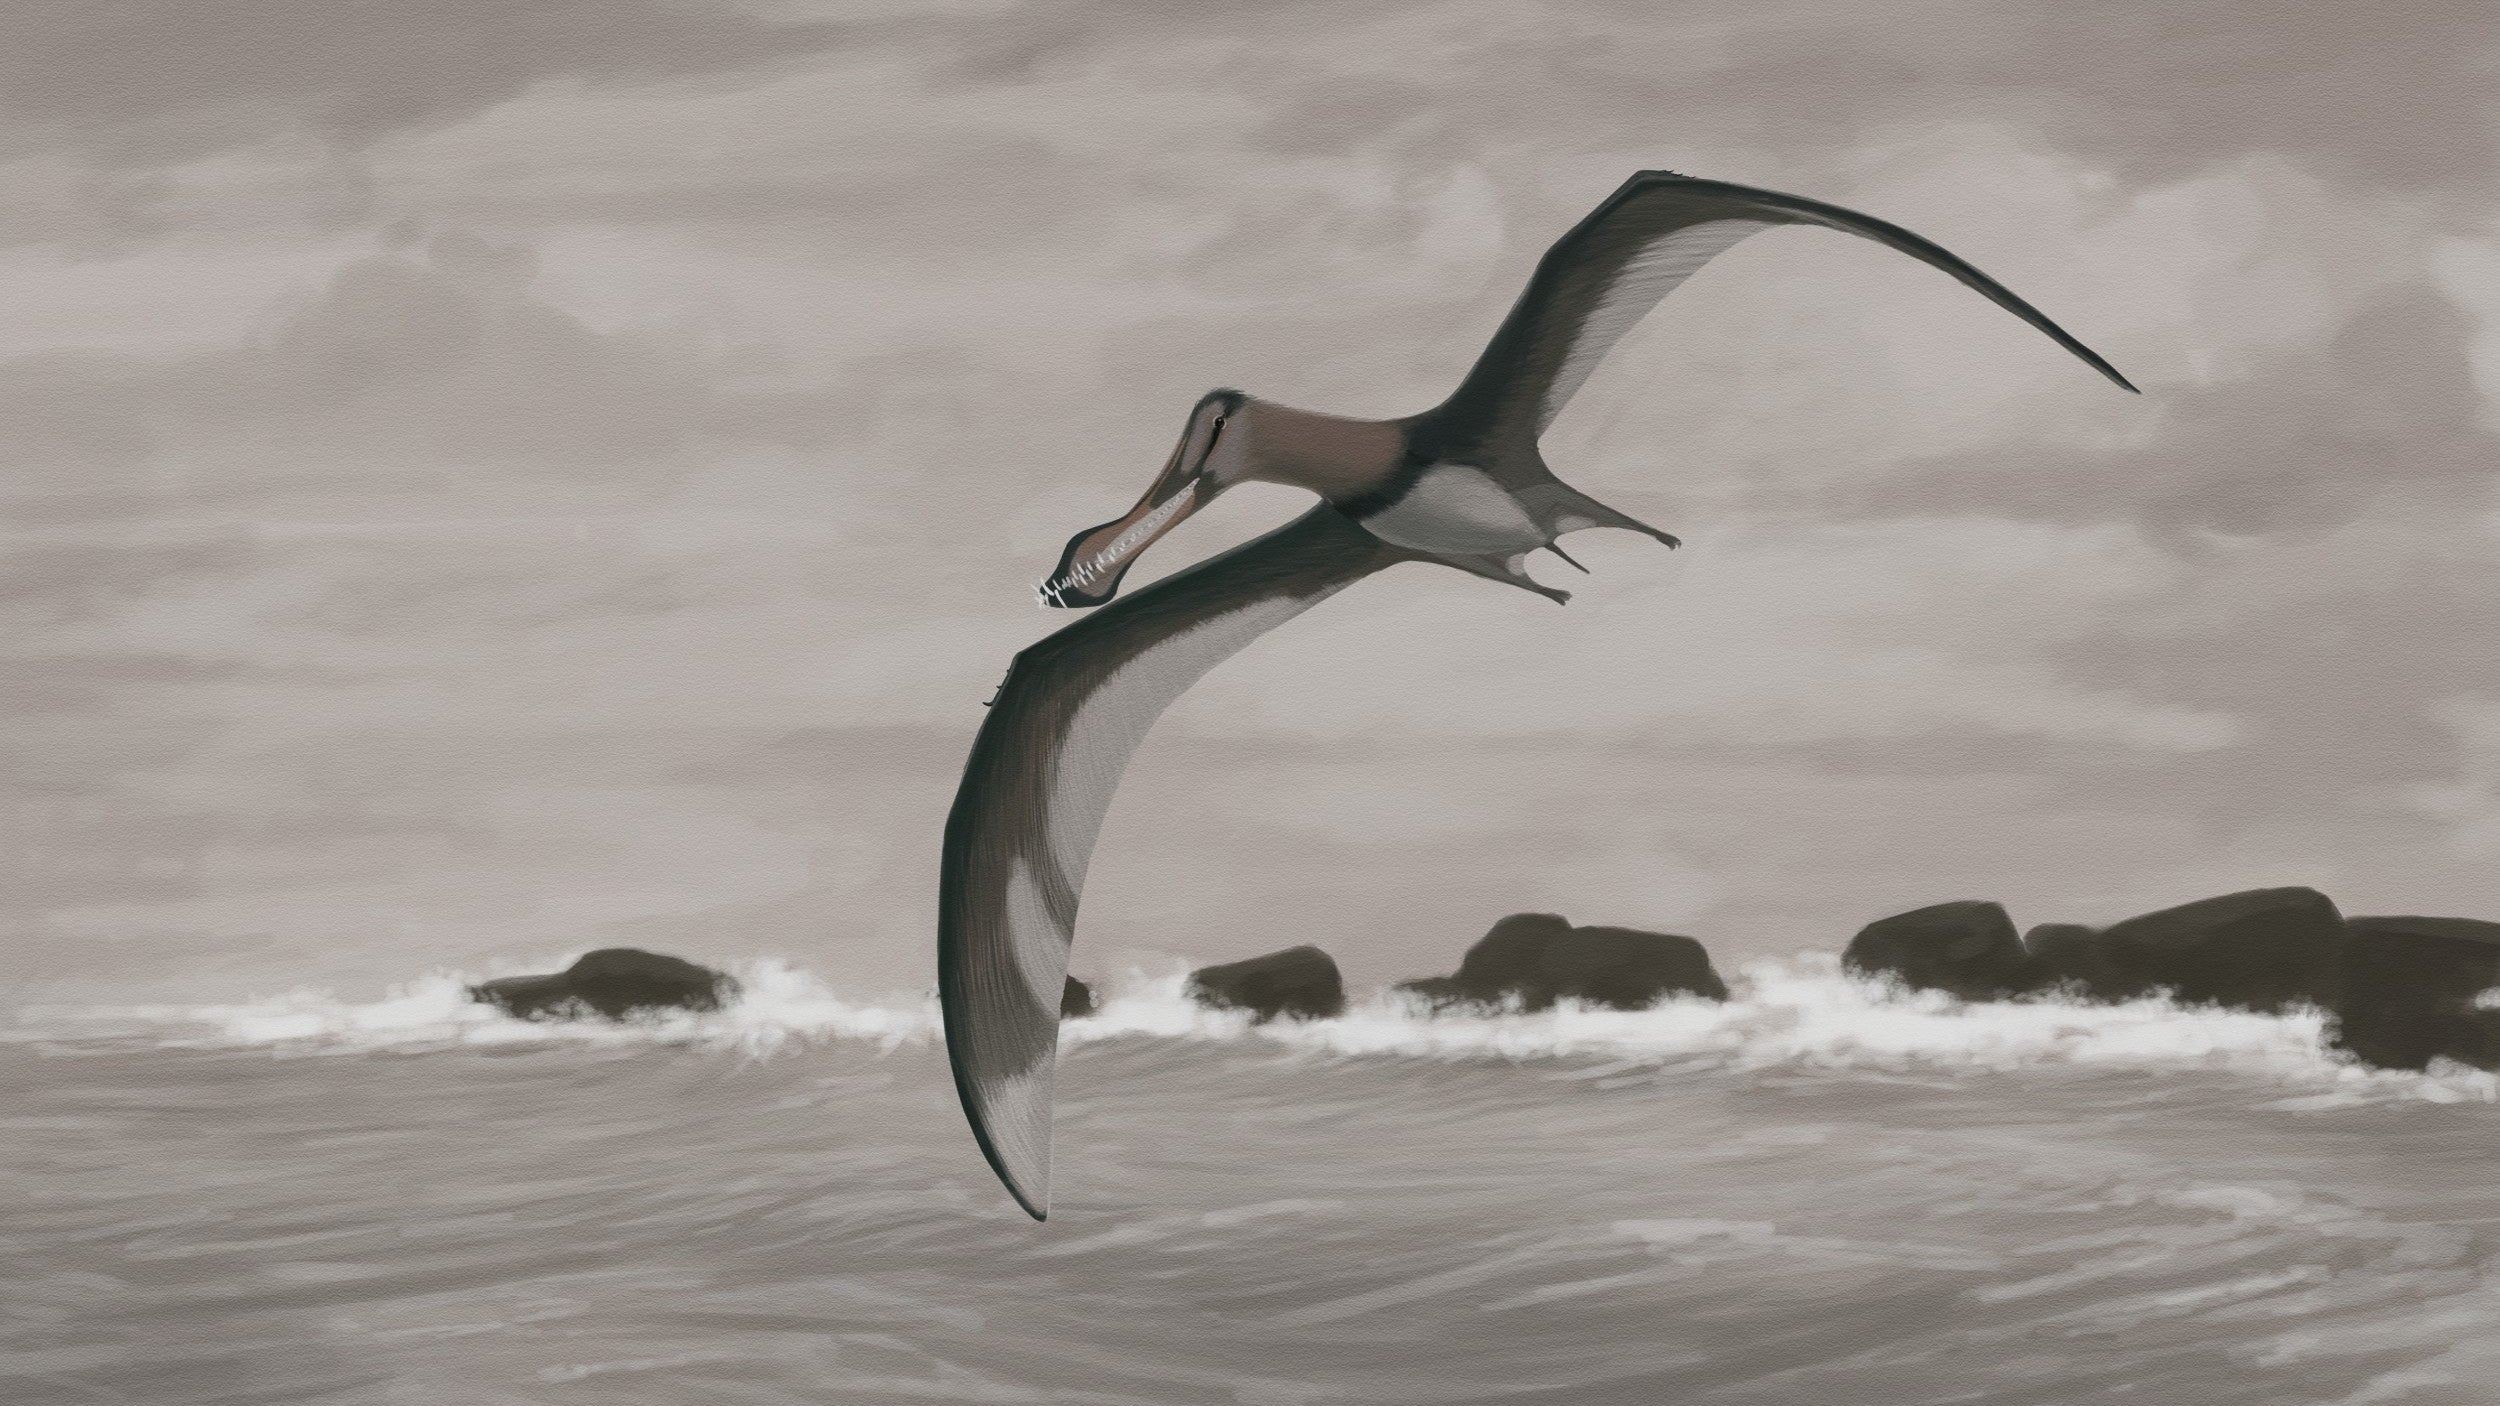 dinosaur-flight dinosaurs early-flight evolution-of-flight paleontology pterodactyls pterosaur-flight pterosaurs